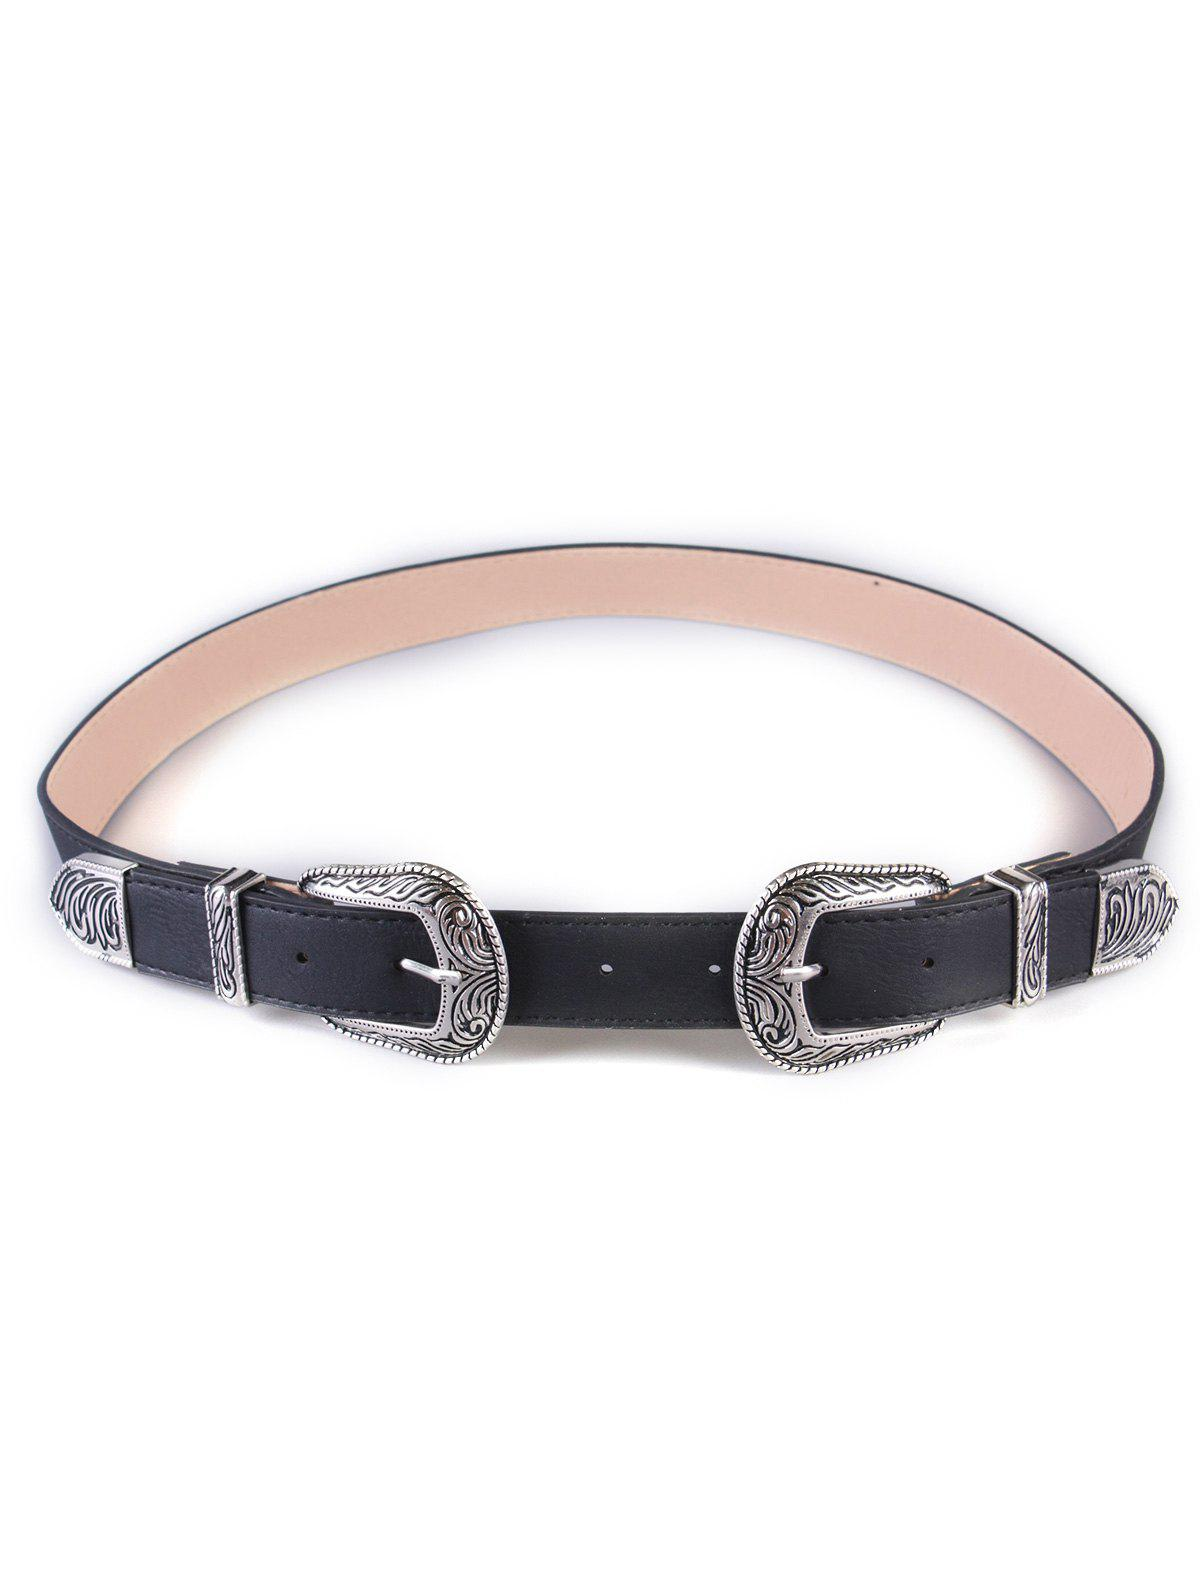 Retro Double Buckles Wide Belt - SILVER